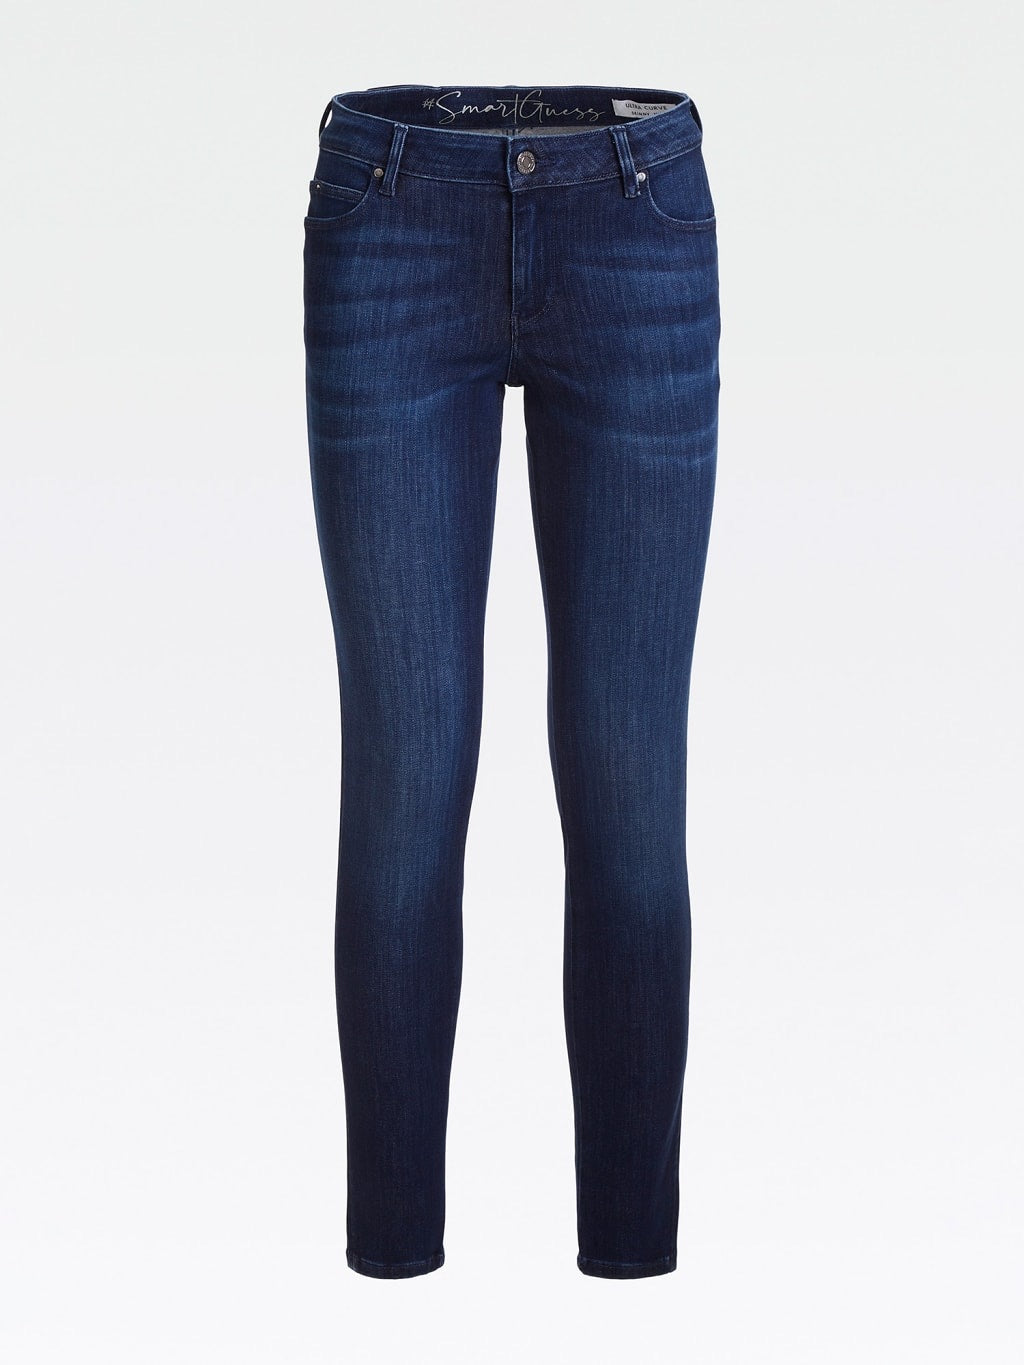 Hsta ultra power curve jeans